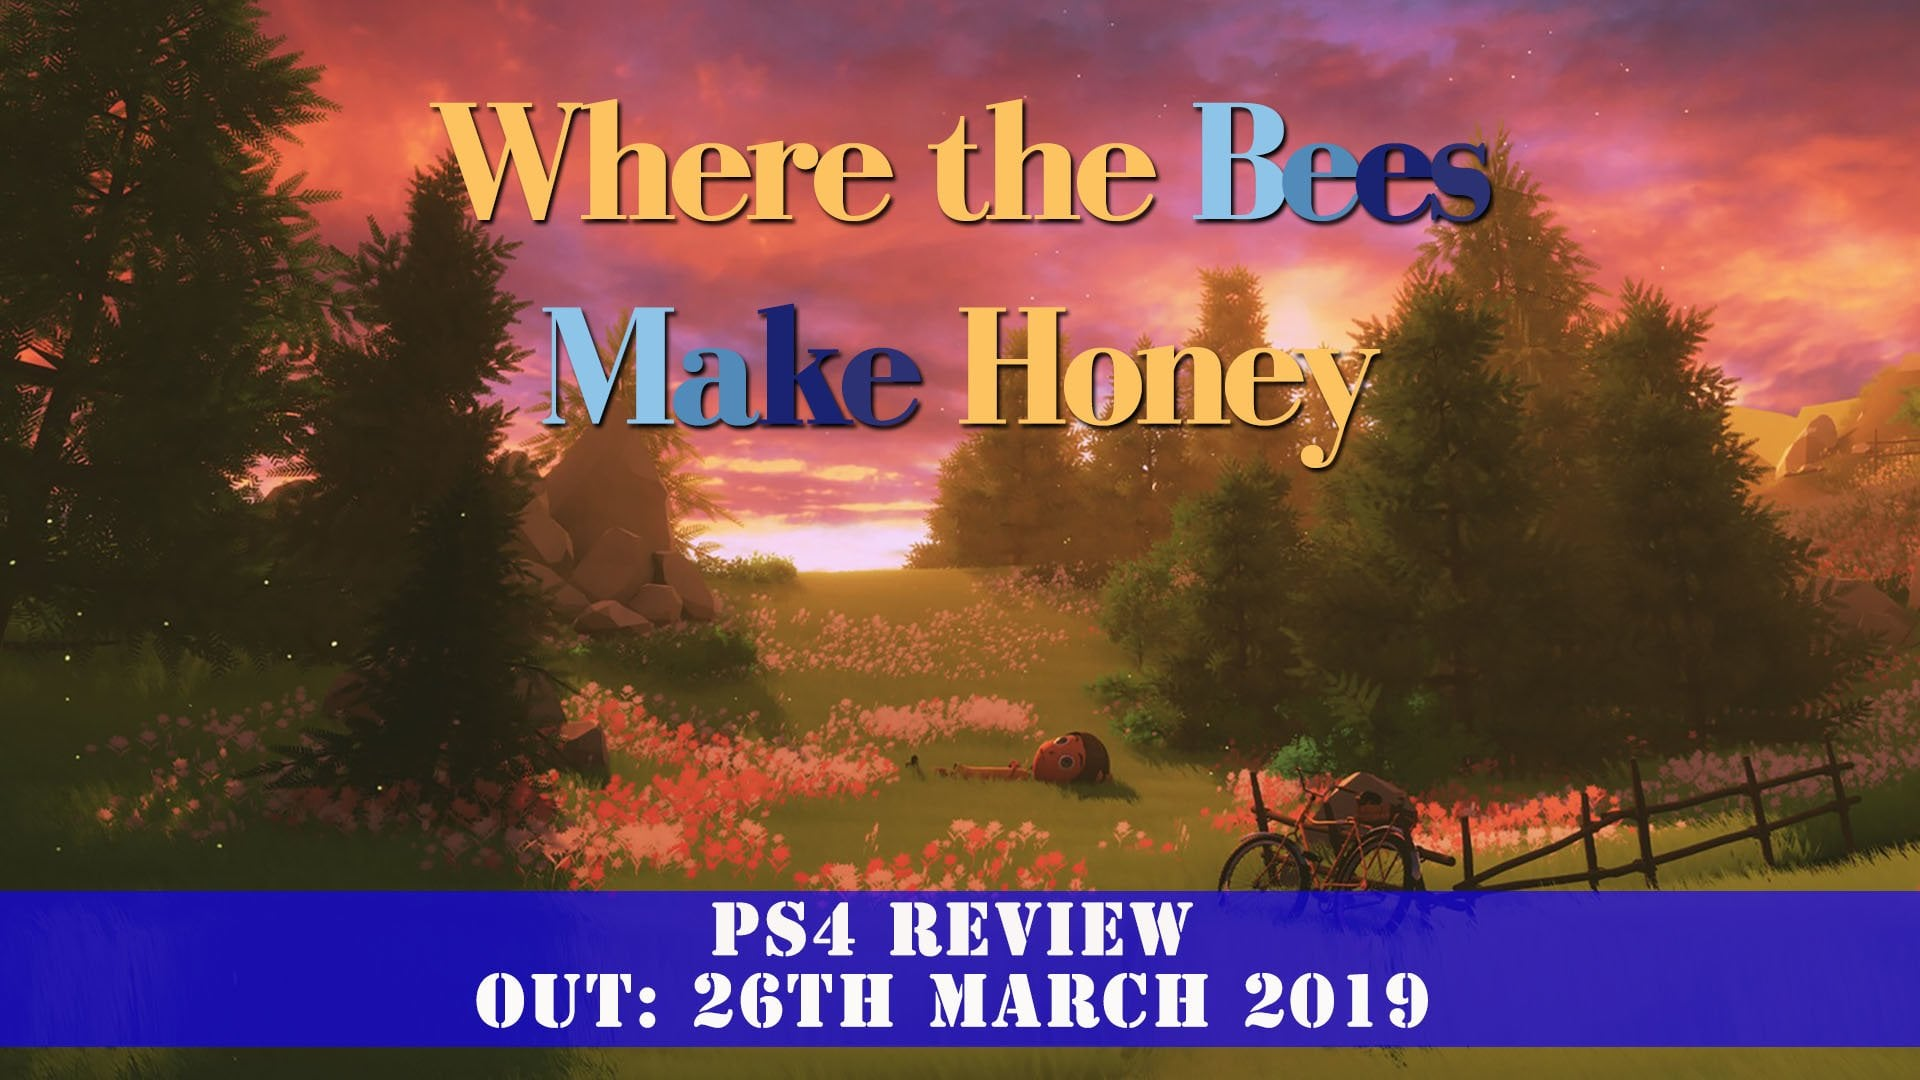 Where the Bees Make Honey (PS4) Review